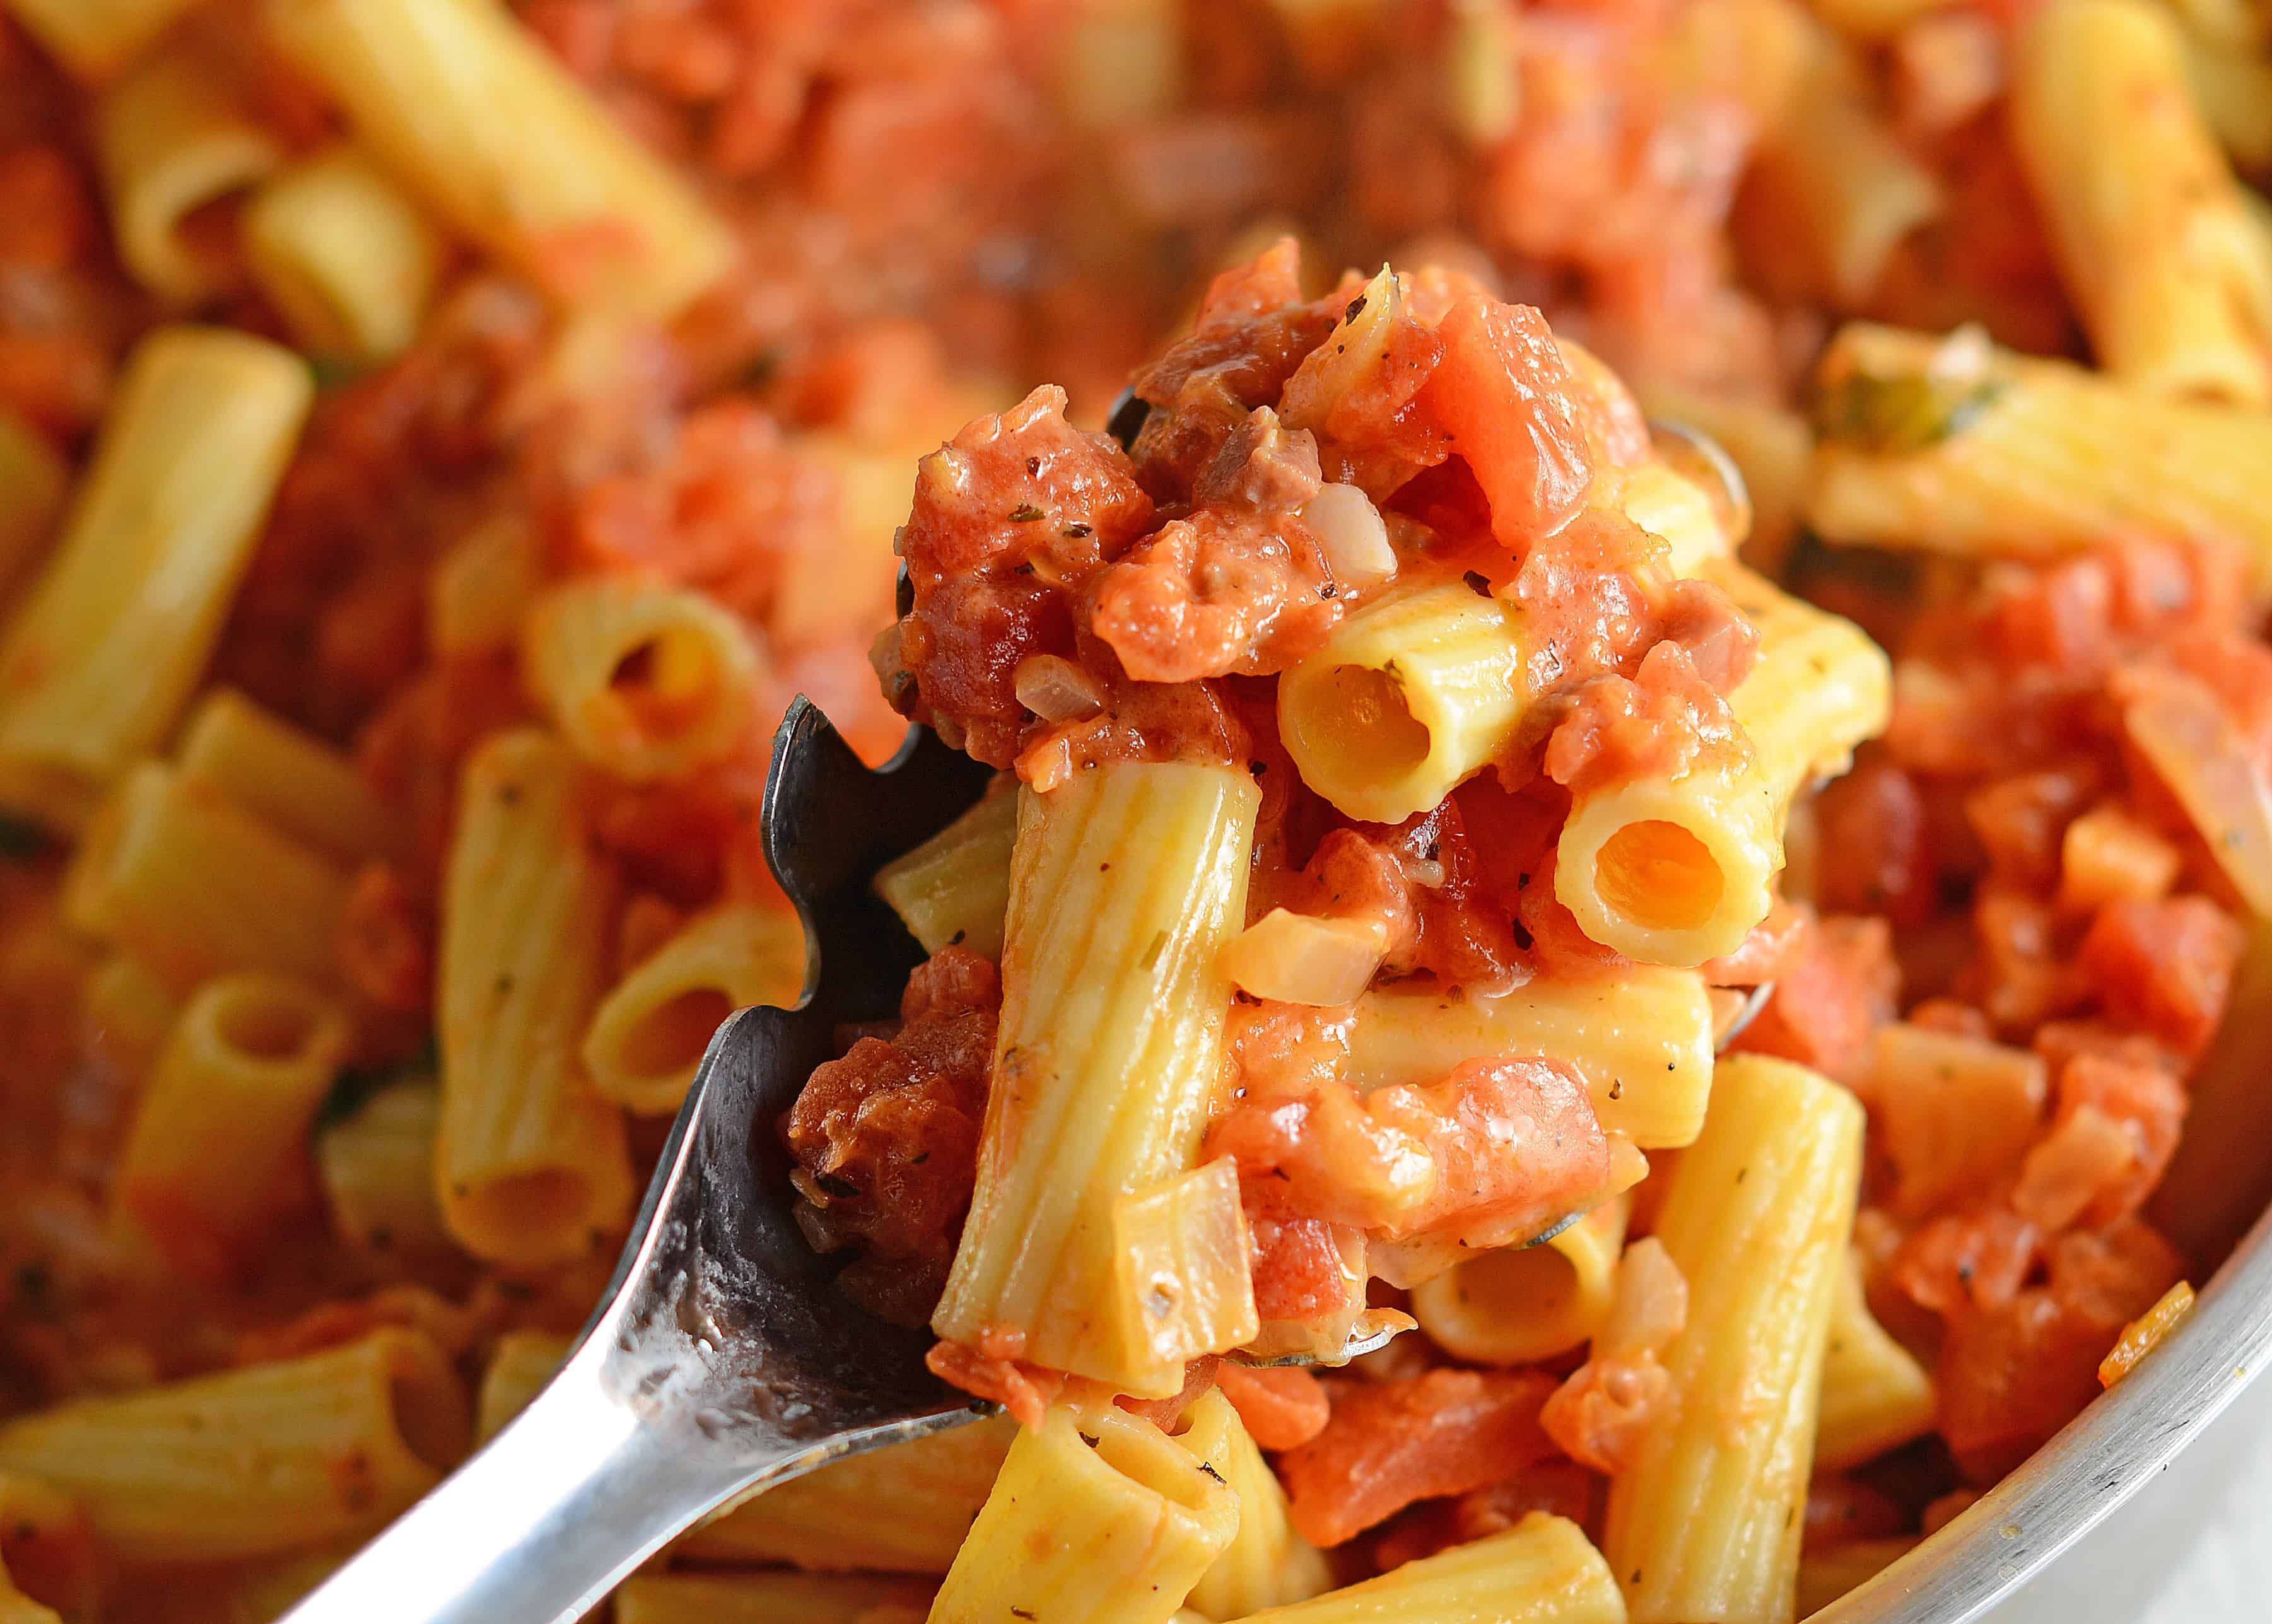 Creamy Vodka Sauce is an easy pasta sauce recipe pancetta, tomatoes and cream. Serve over your favorite pasta like Penne alla Vodka! #vokdasauce #penneallavodka www.savoryexperiments.com